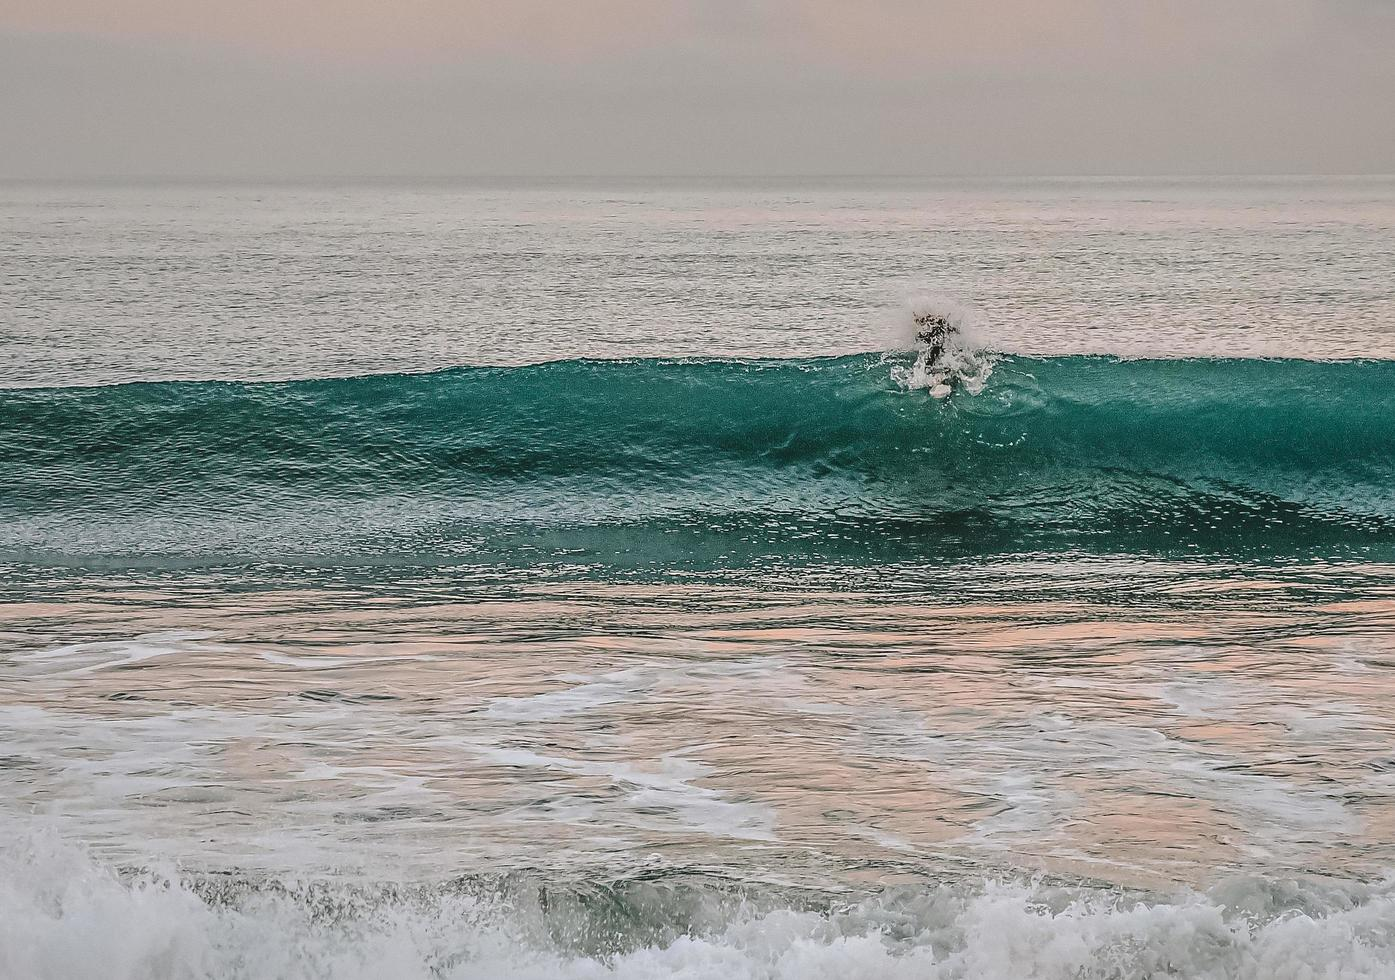 Person surfing on sea waves photo